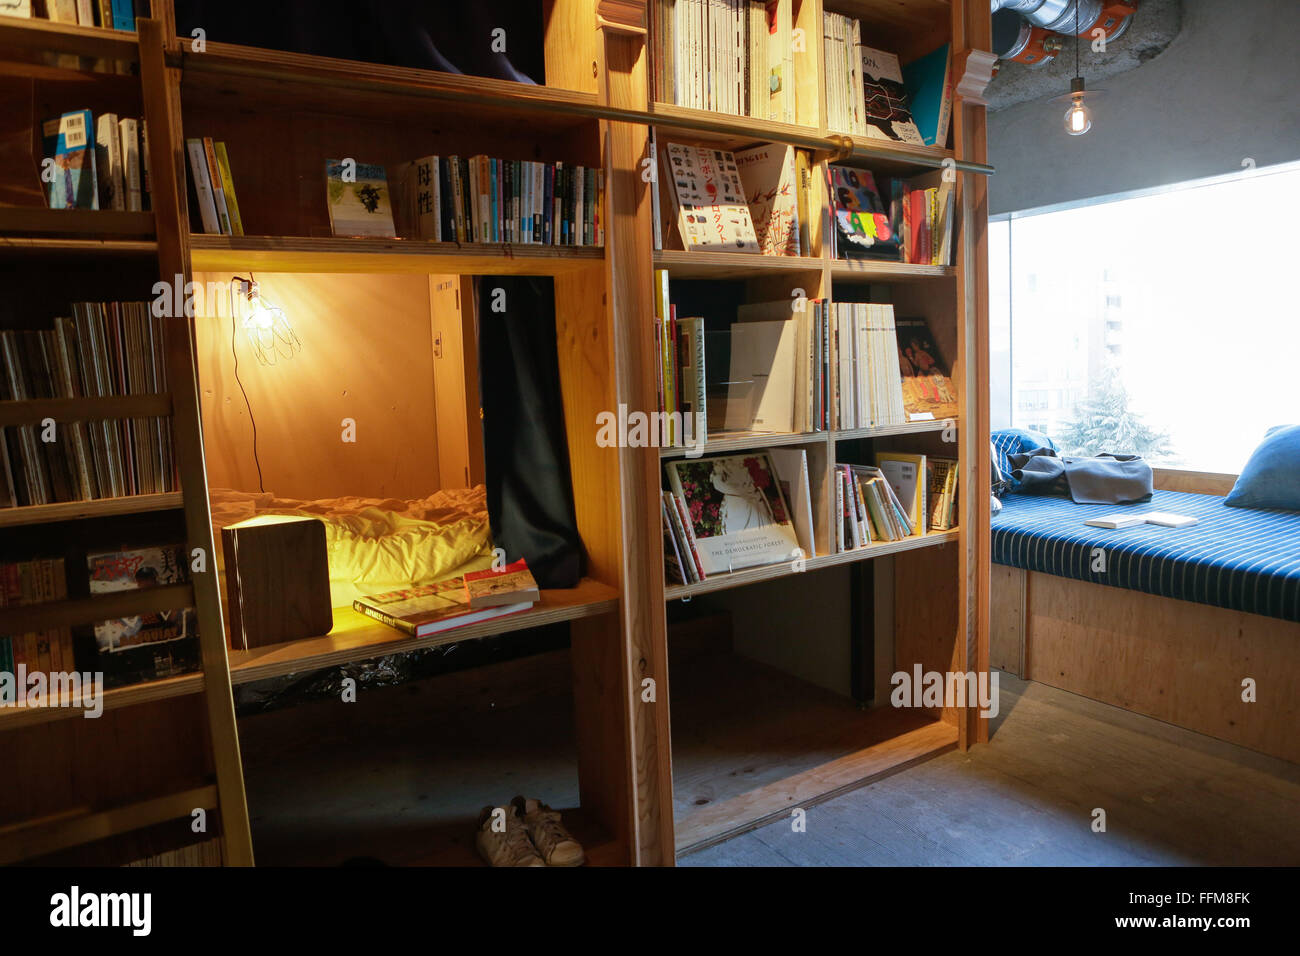 the book and bed designer hostel in ikebukuro on february 5 2016